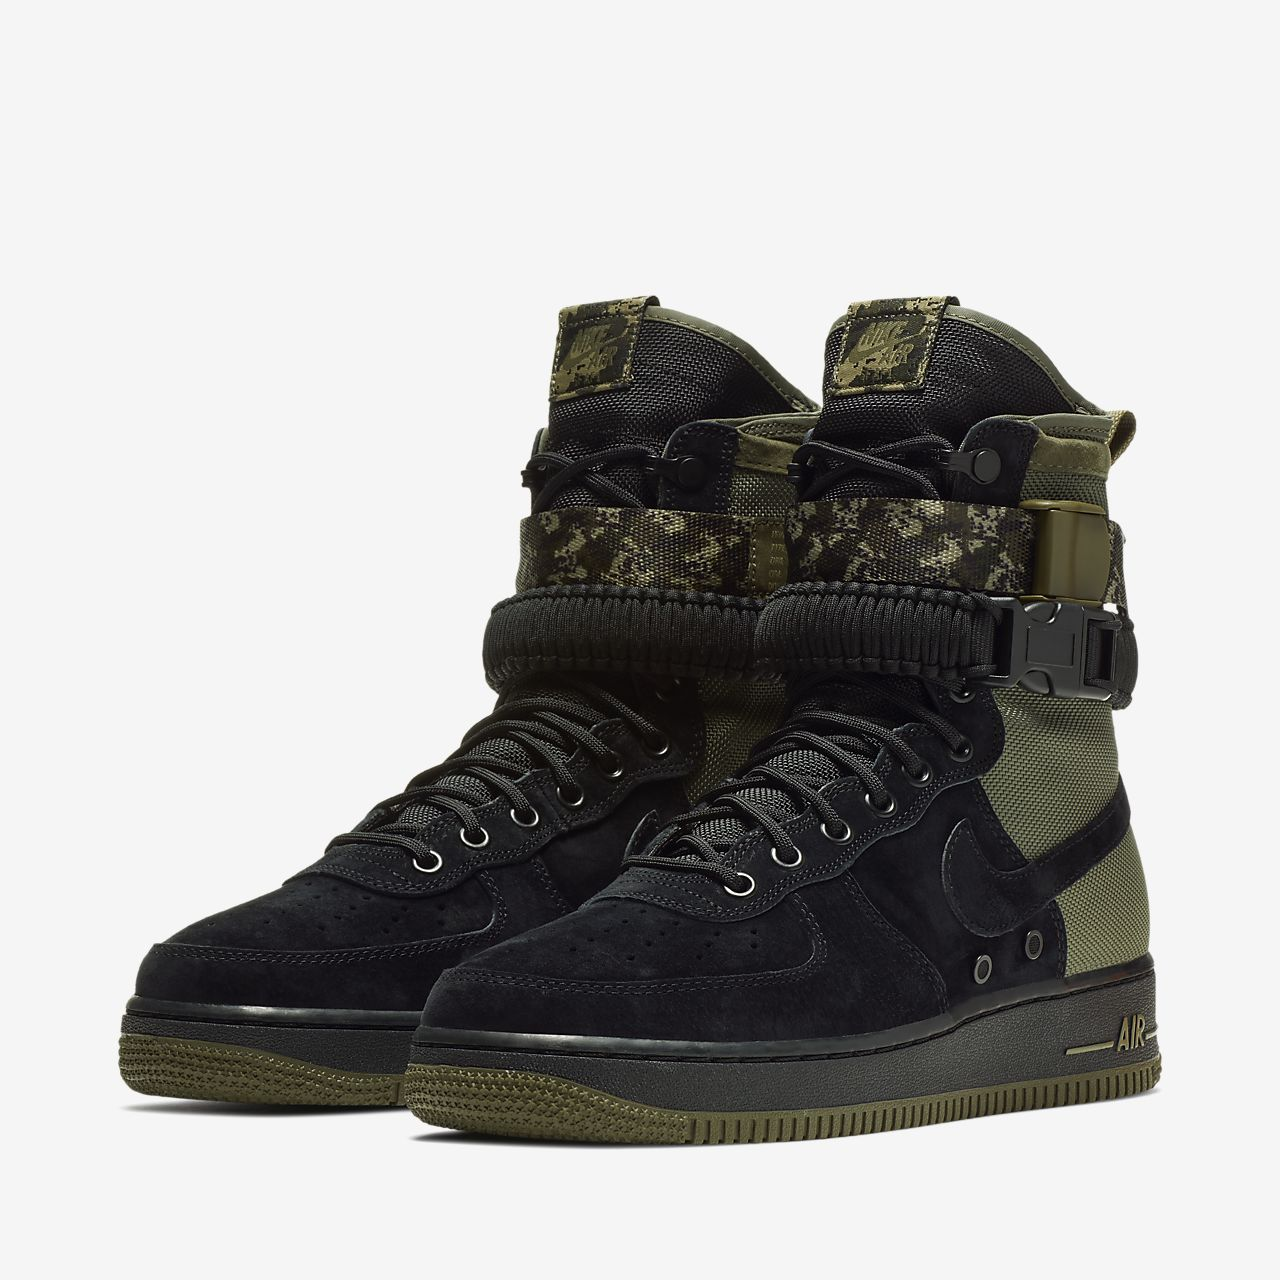 Nike SF Air Force 1 Men's Lifestyle Boots Black/Brown vW8711K